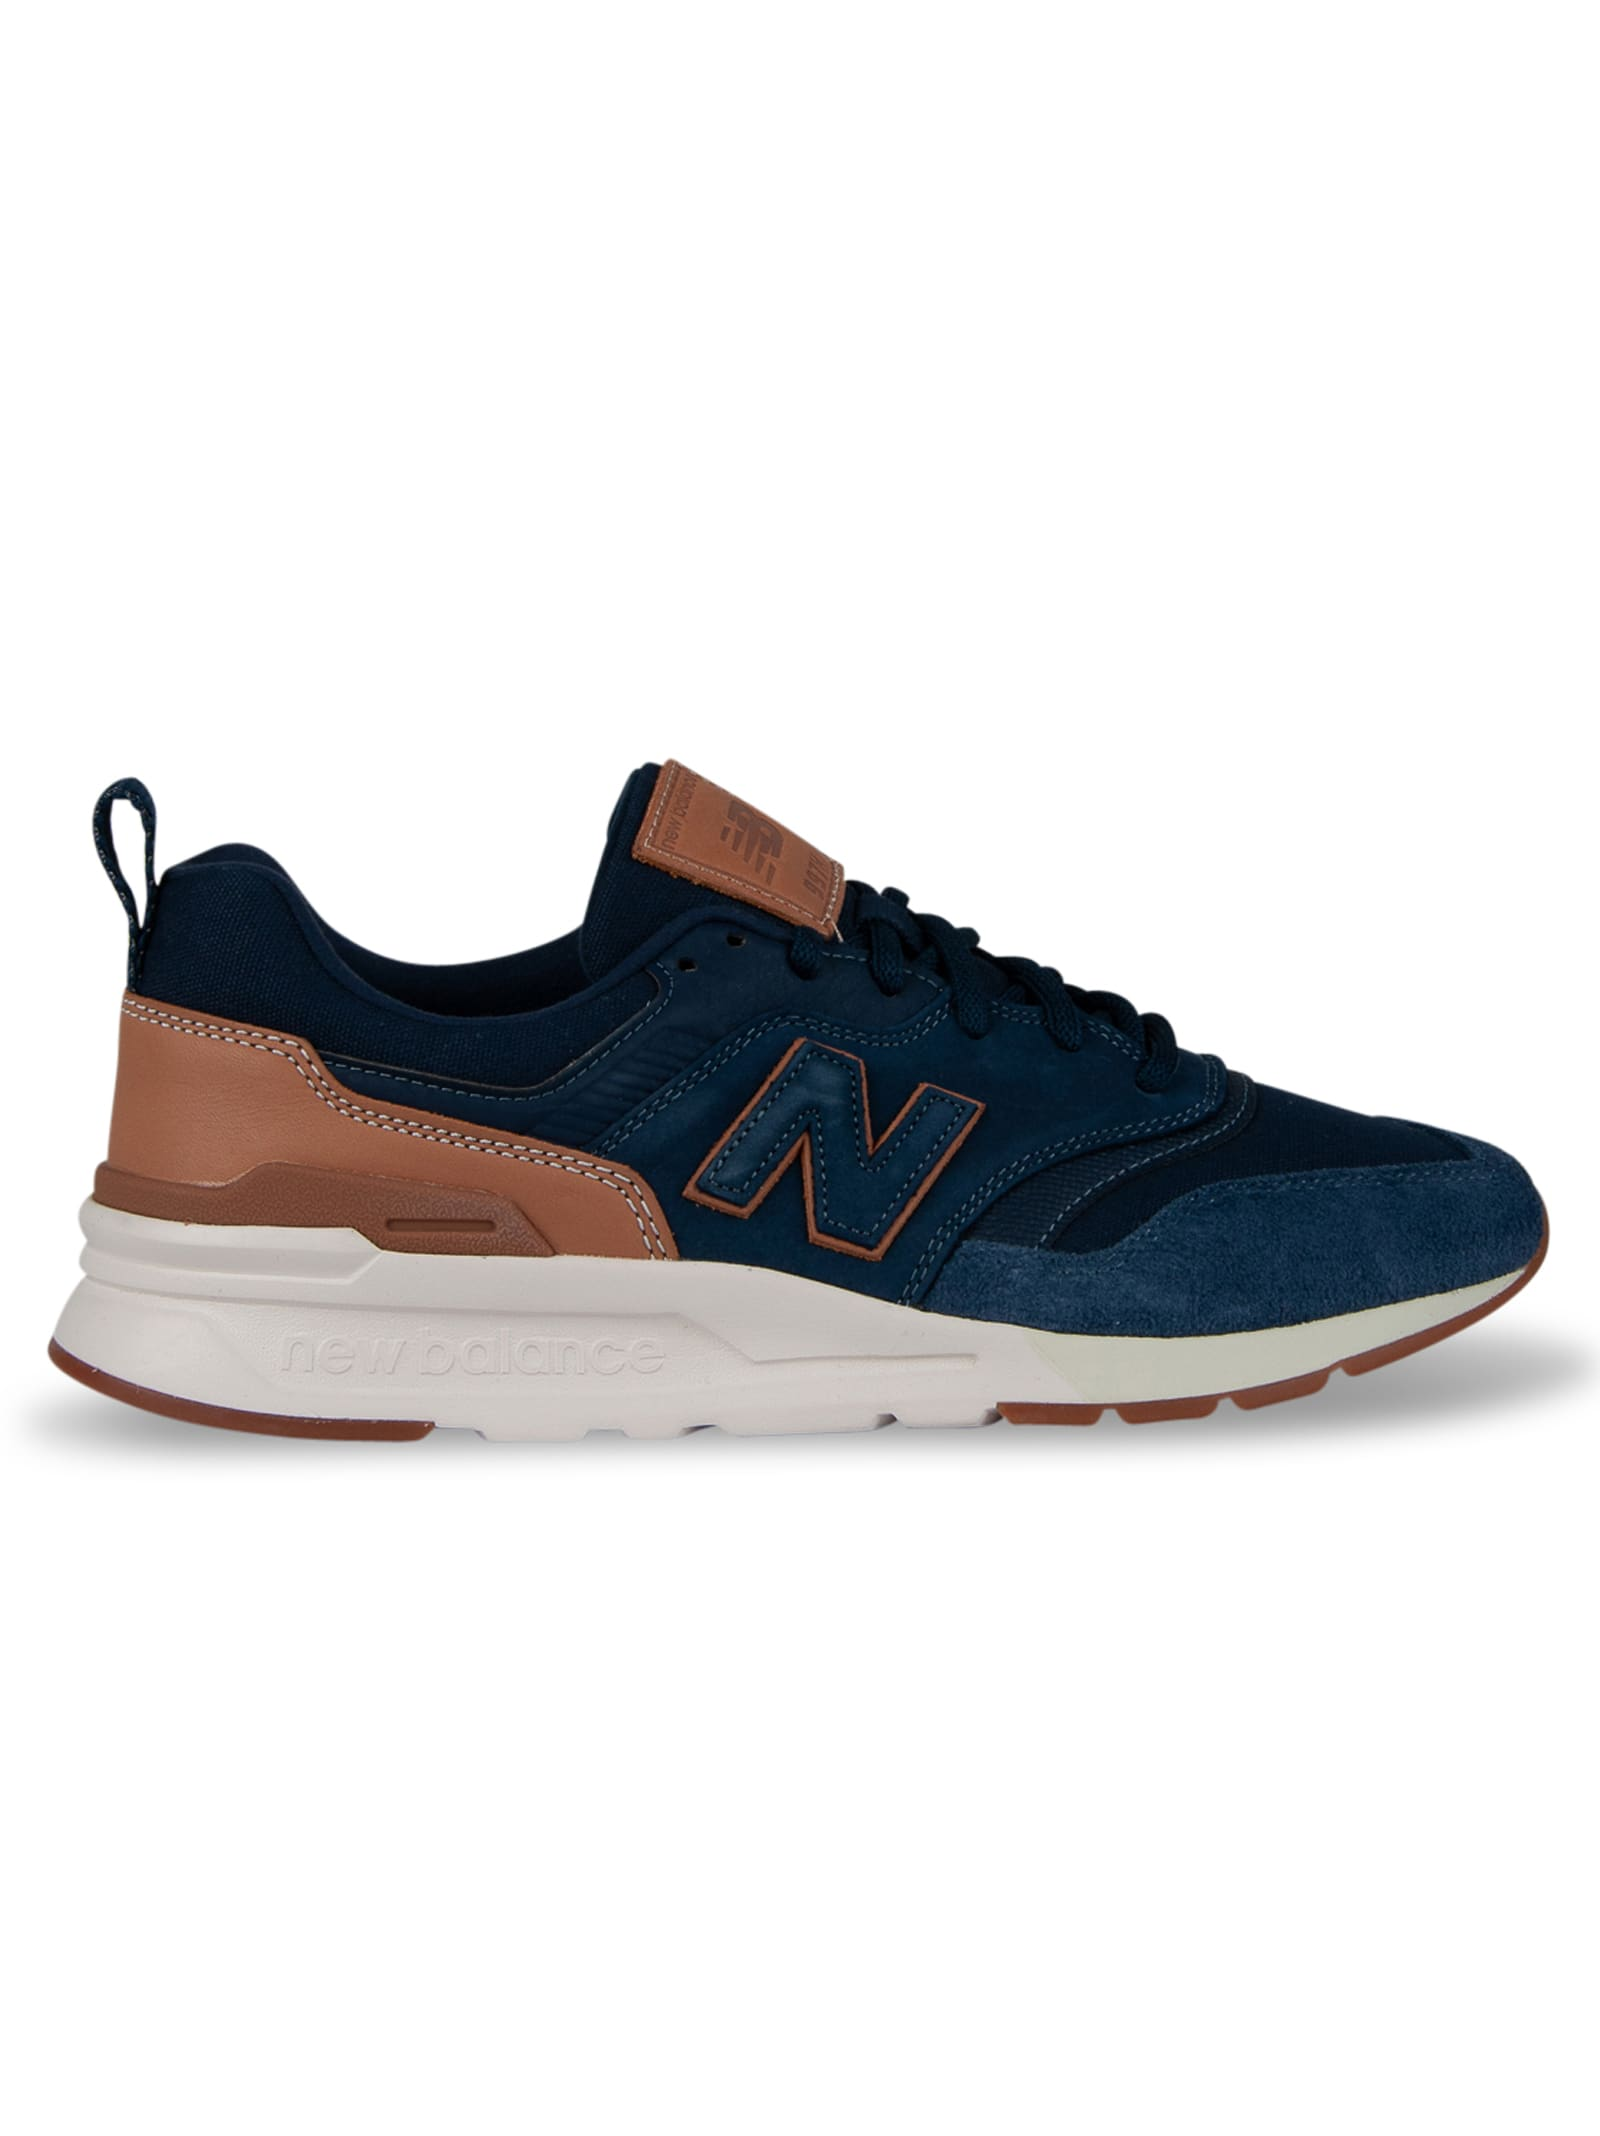 997h Lux 10 Year Leather - Blue/brown